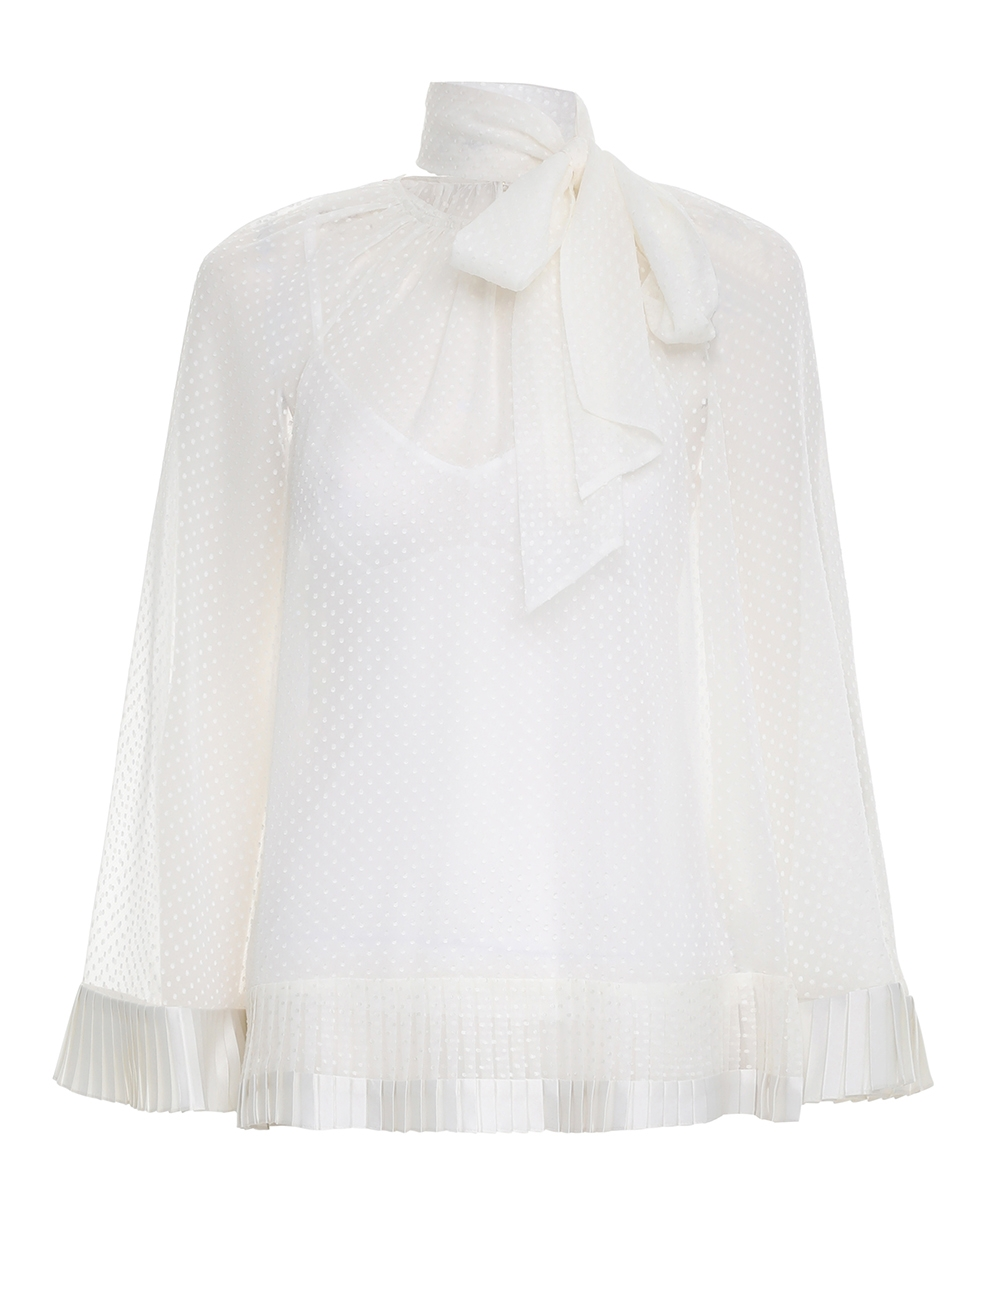 Tiered Flared Blouse